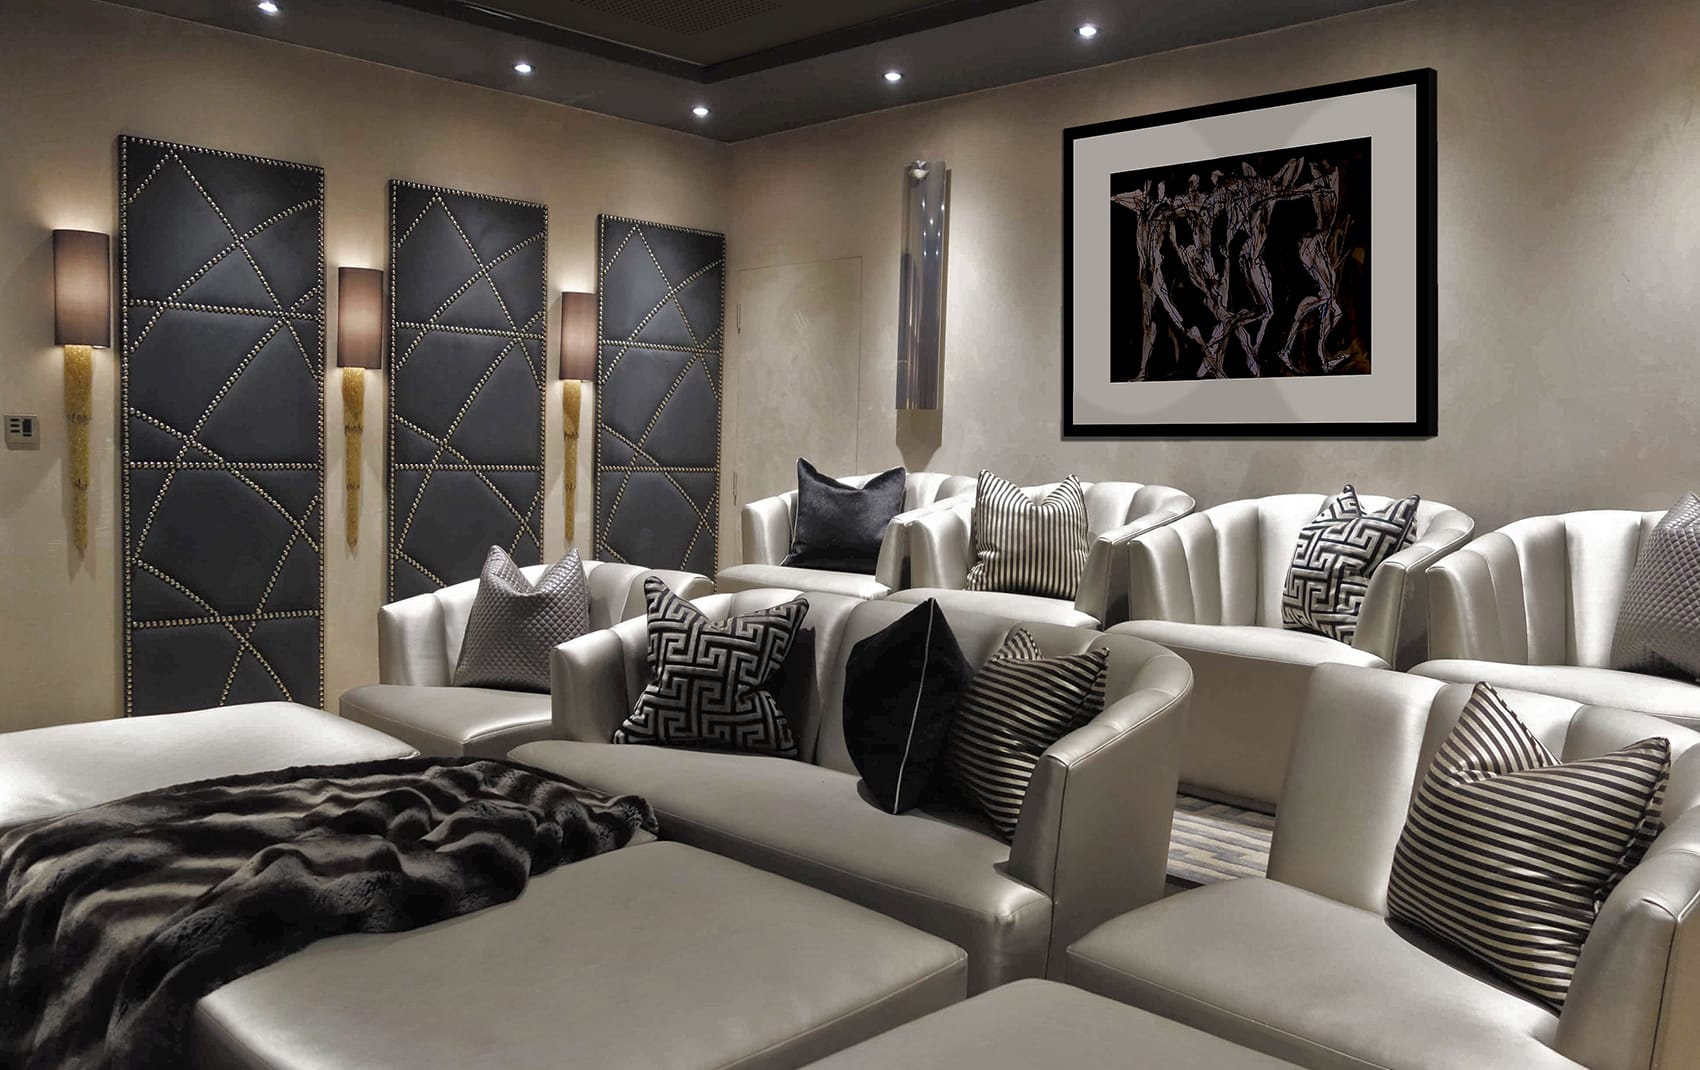 Interior Designers London | Luxury Interior Designer Theatre Room | Rene Dekker Design